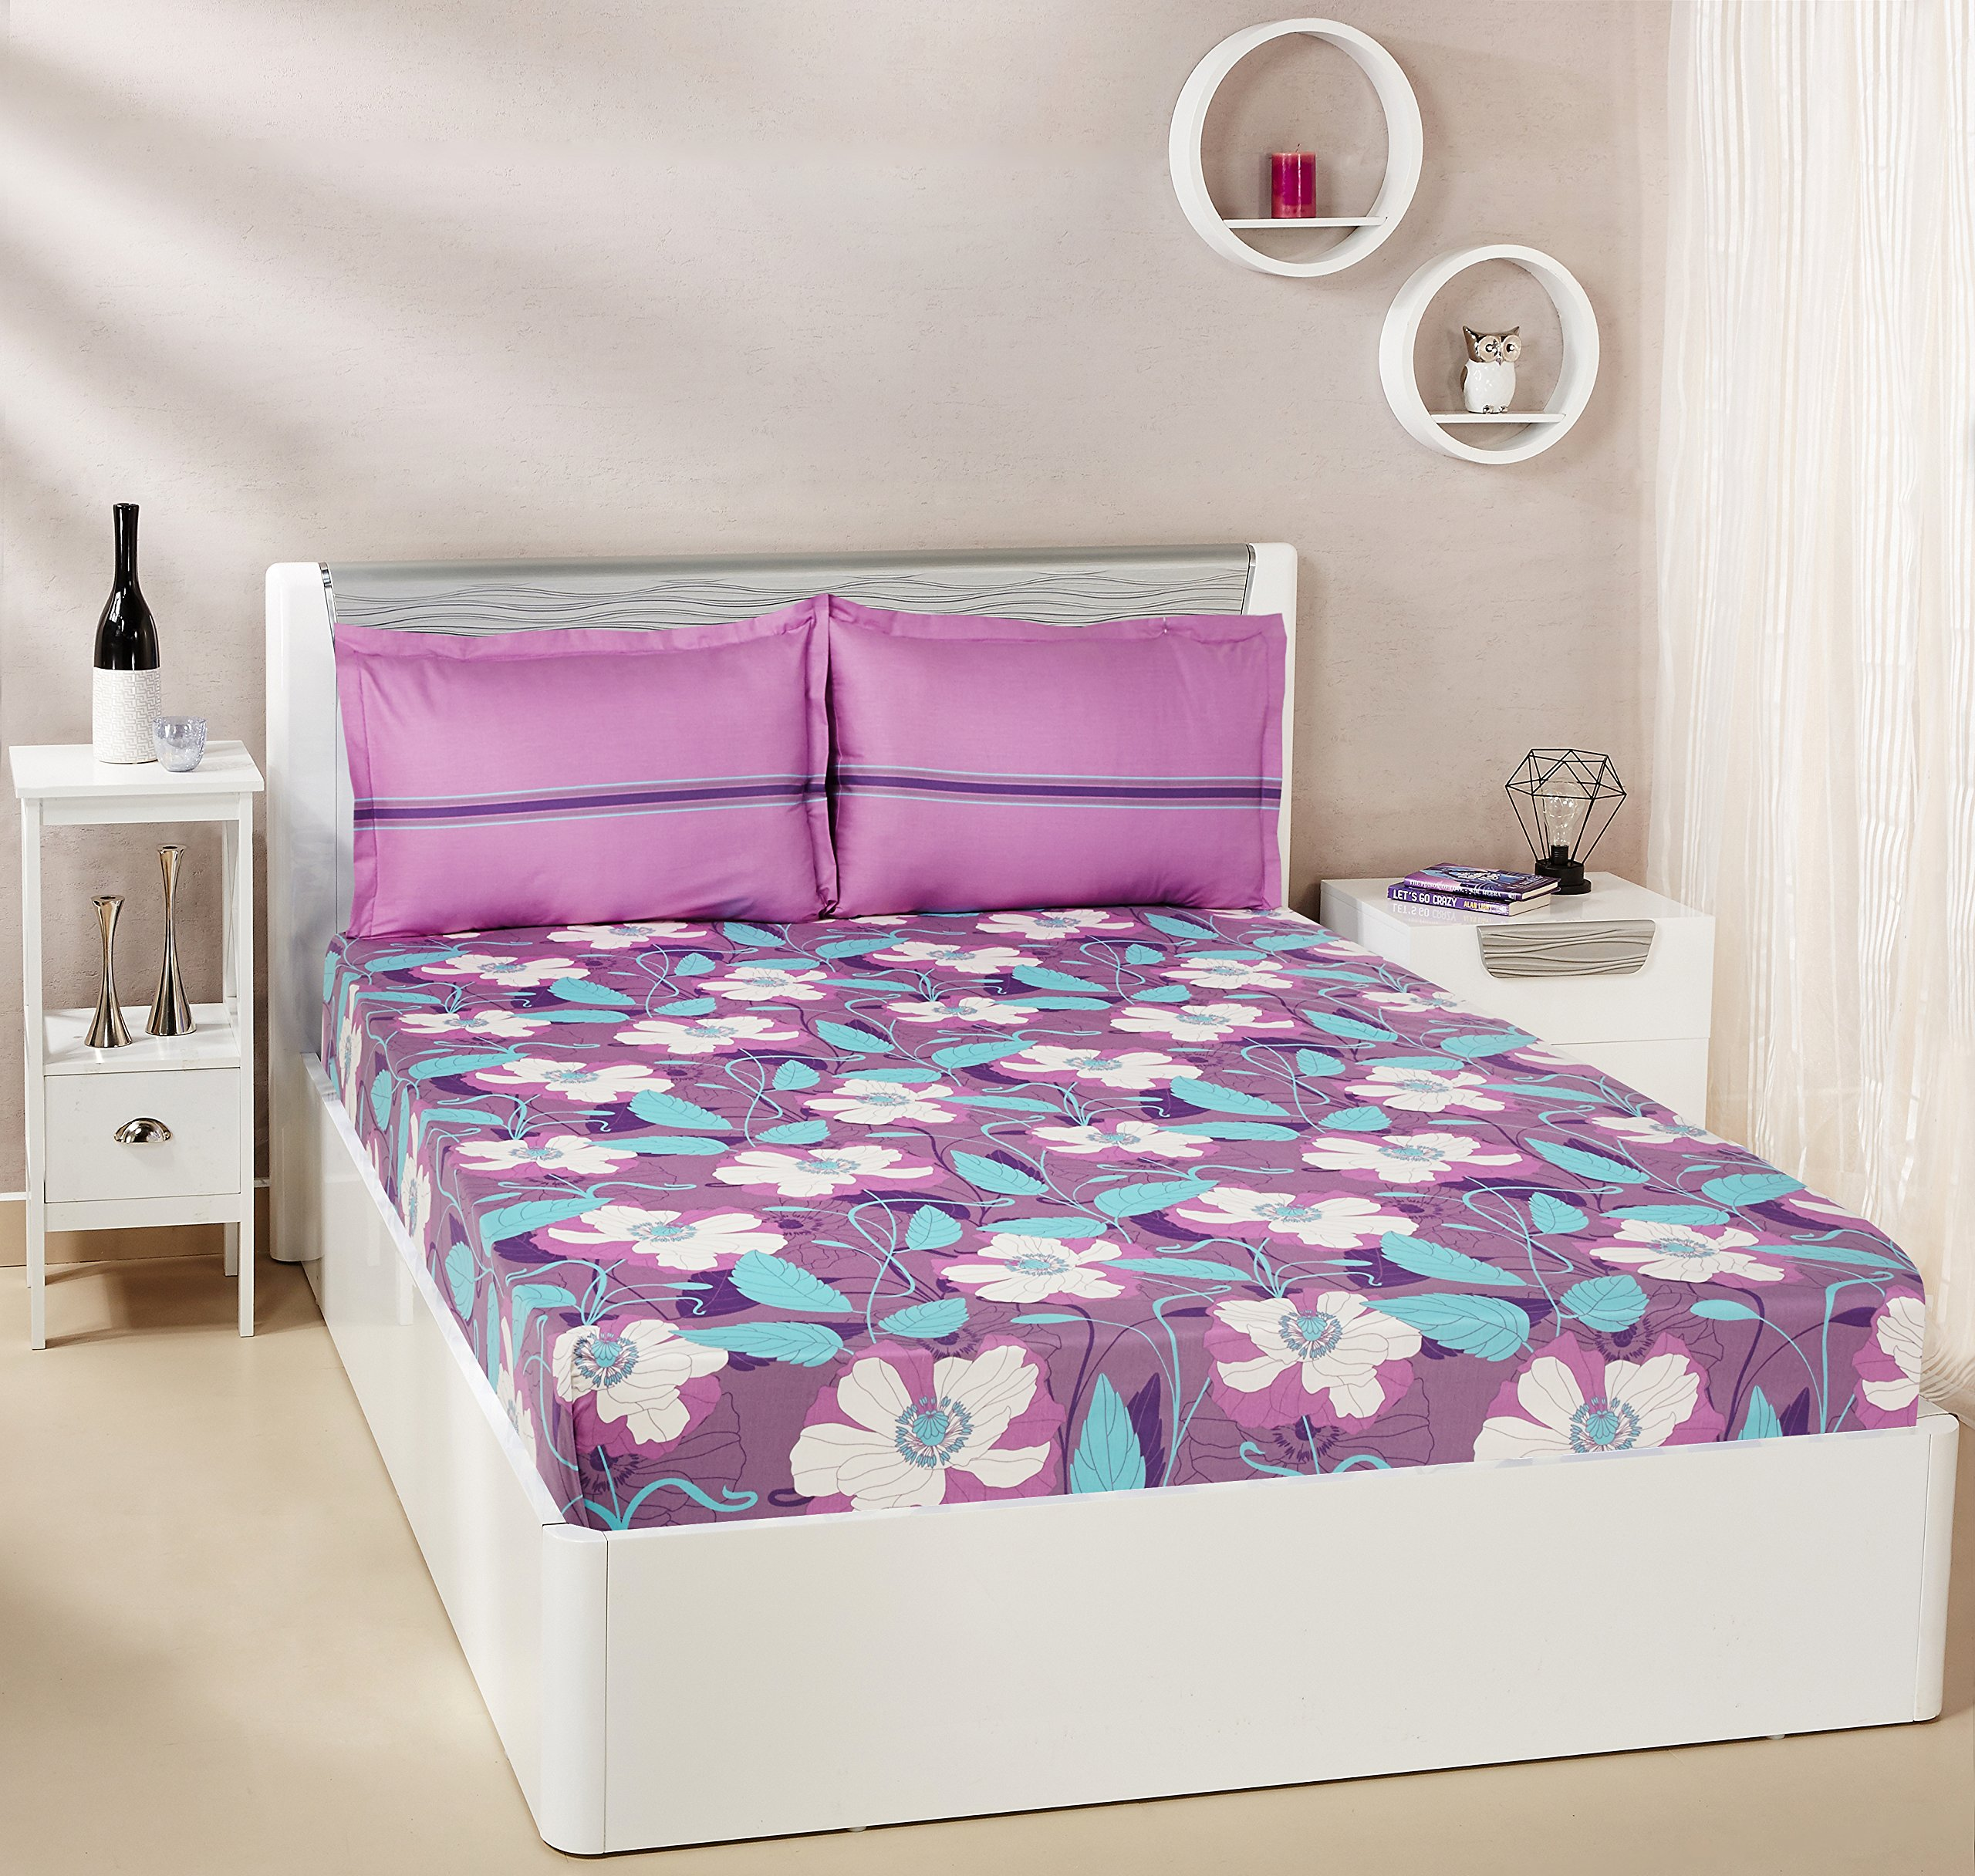 Amazon Brand - Solimo Floral Swirls 144 TC 100% Cotton Double Bedsheet with 2 Pillow Covers, Purple product image